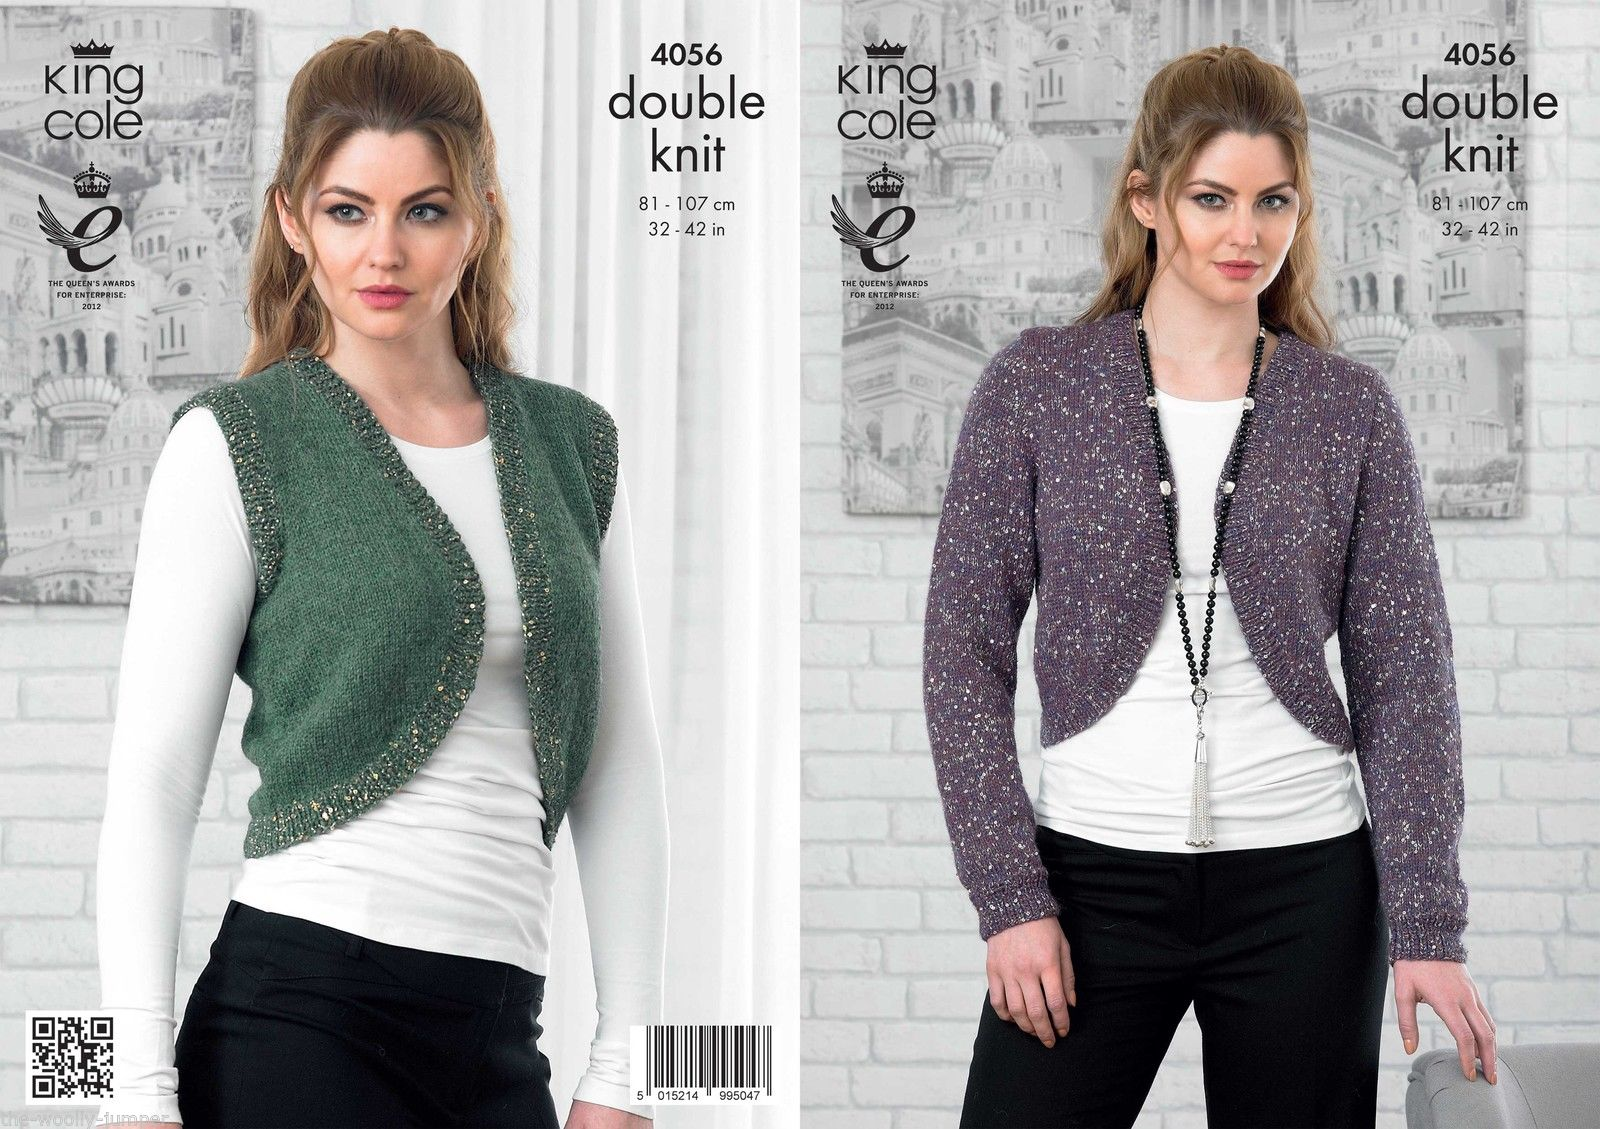 4056 - KING COLE COSMOS & ALPACA DK BOLERO CARDIGAN KNITTING PATTERN ...